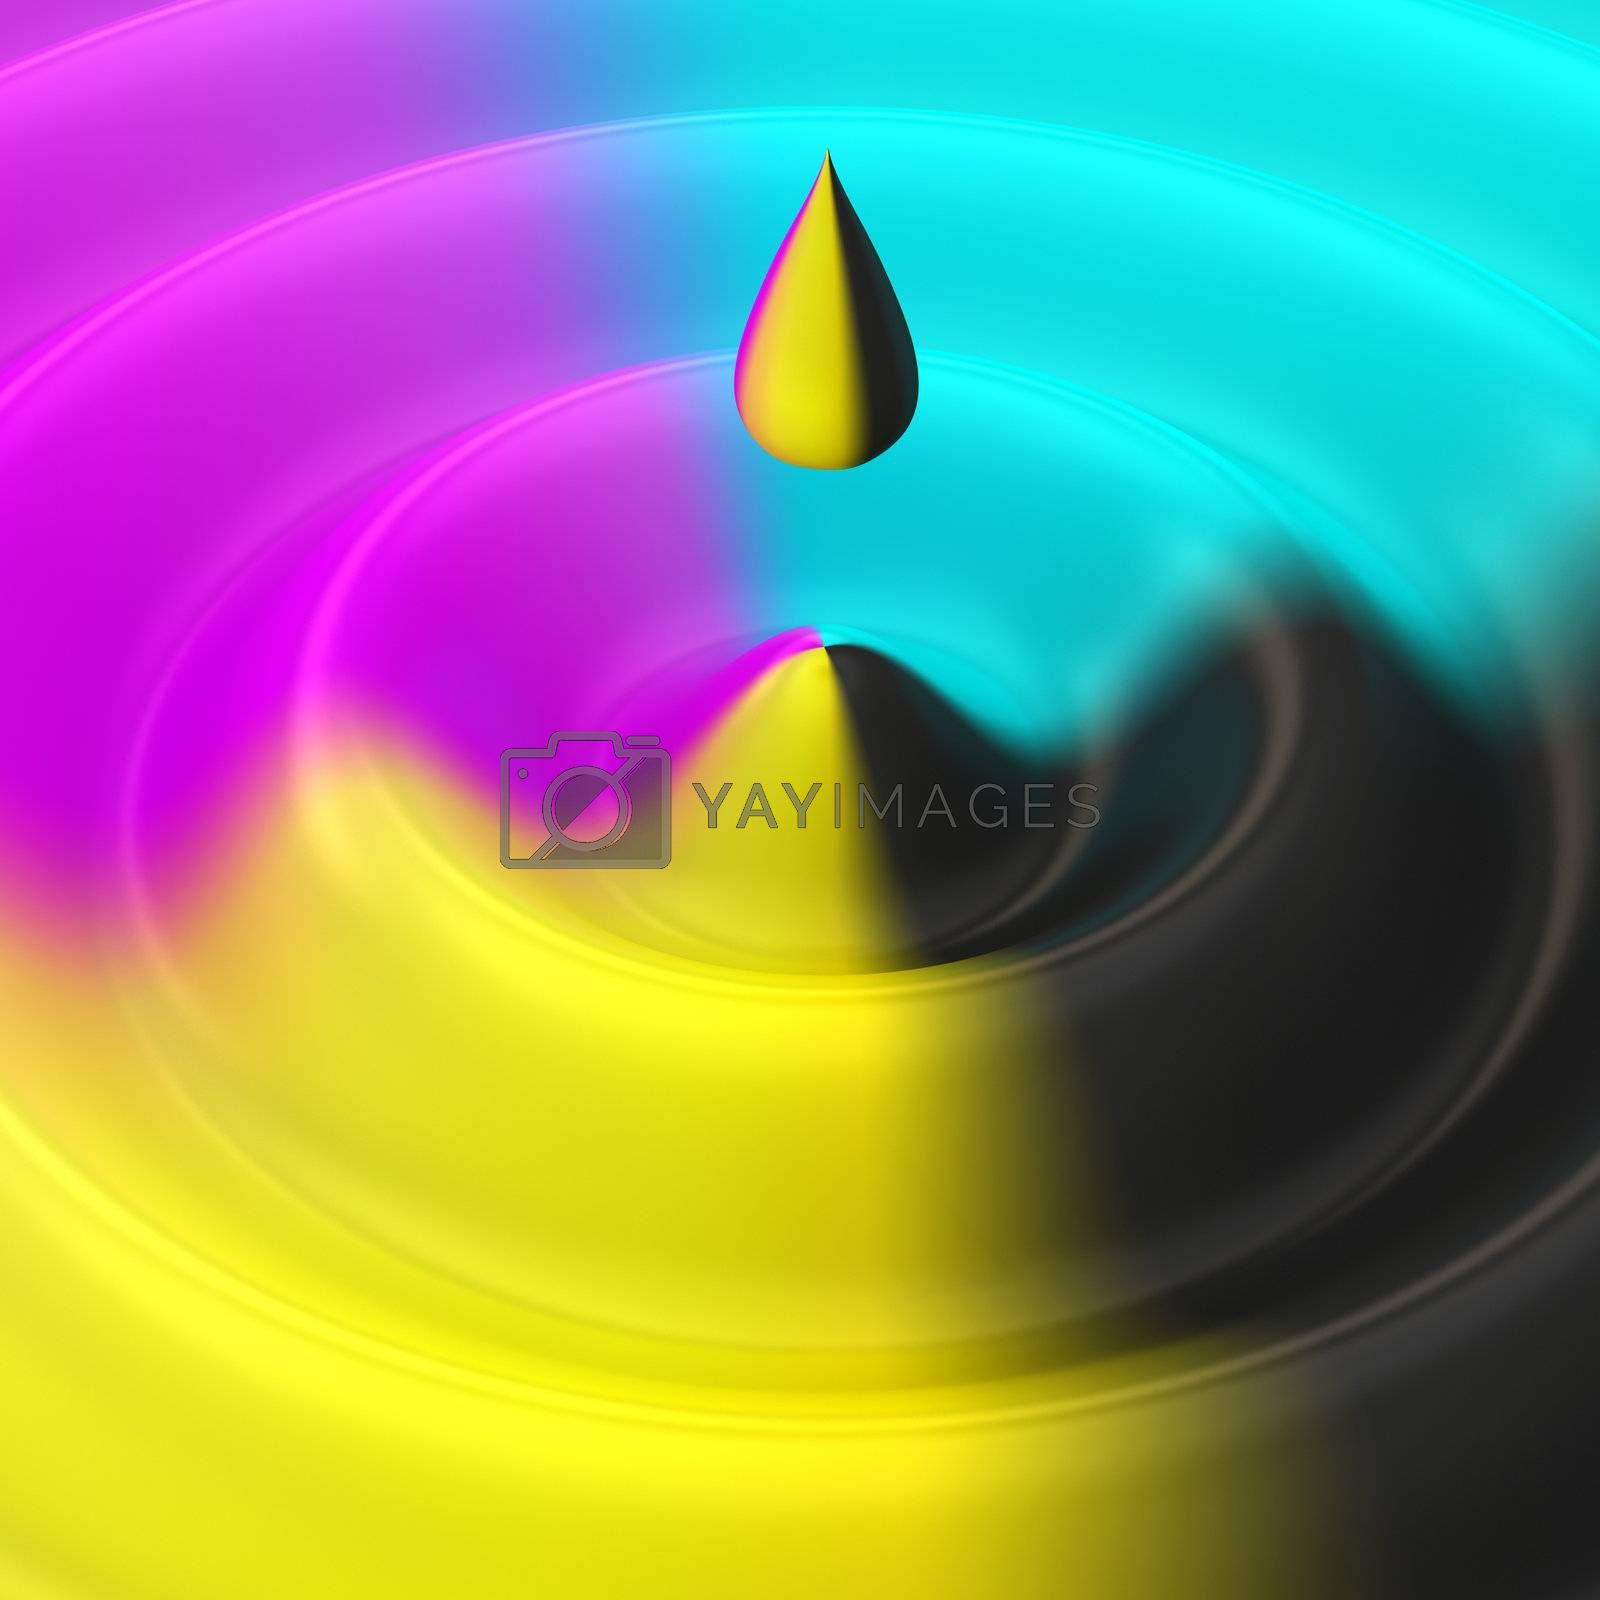 Drop and ripple on the liquid of cmyk colors